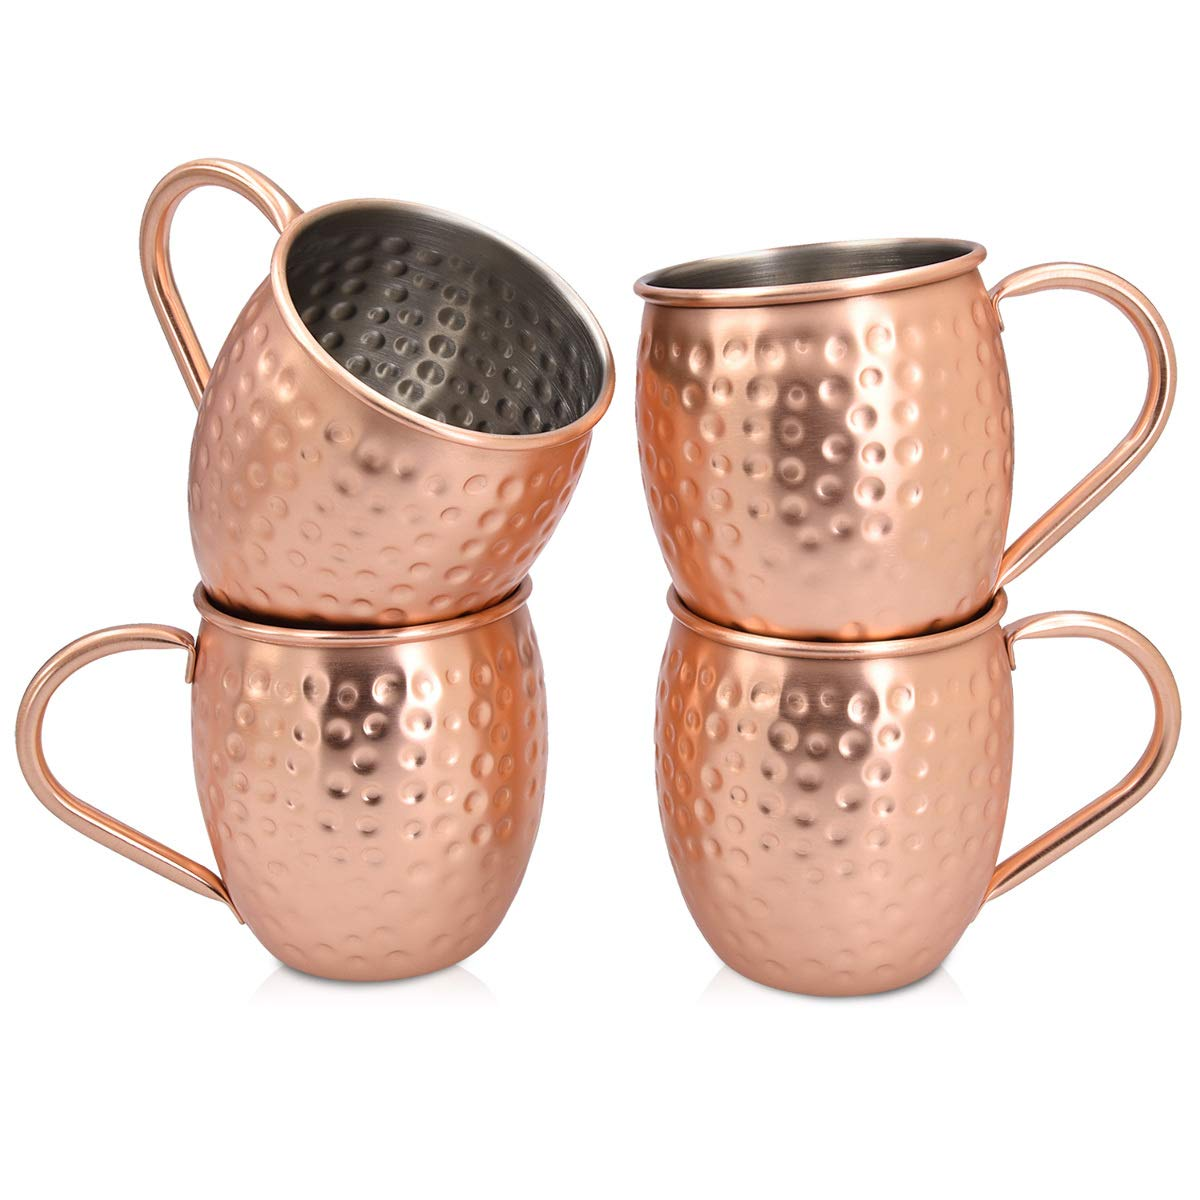 Moscow Mule Mug Cup Drinking Hammered Copper Plated Stainless Steel 500ml